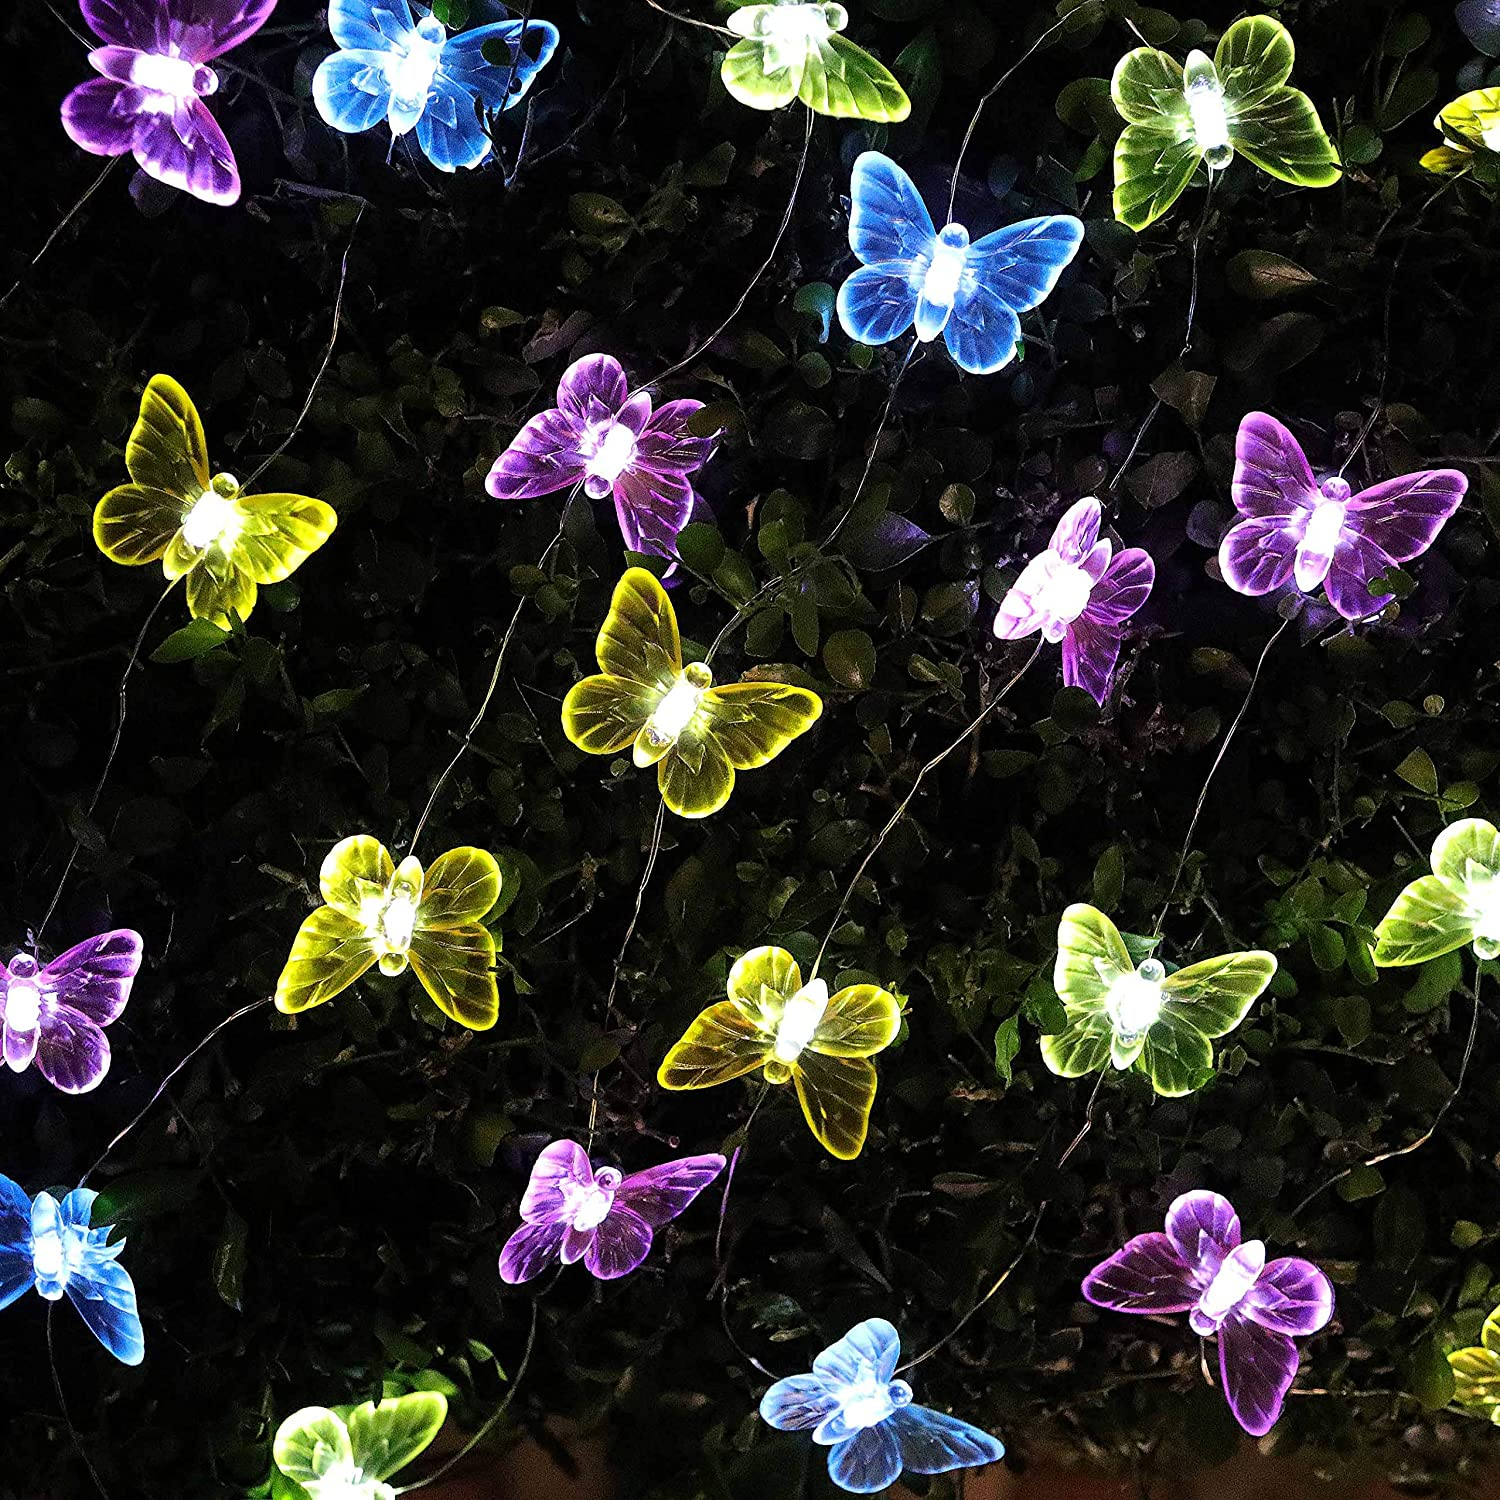 Solar Powered Butterfly Lights LED Fairy String Lamp Outdoor Garden Lawn Decor